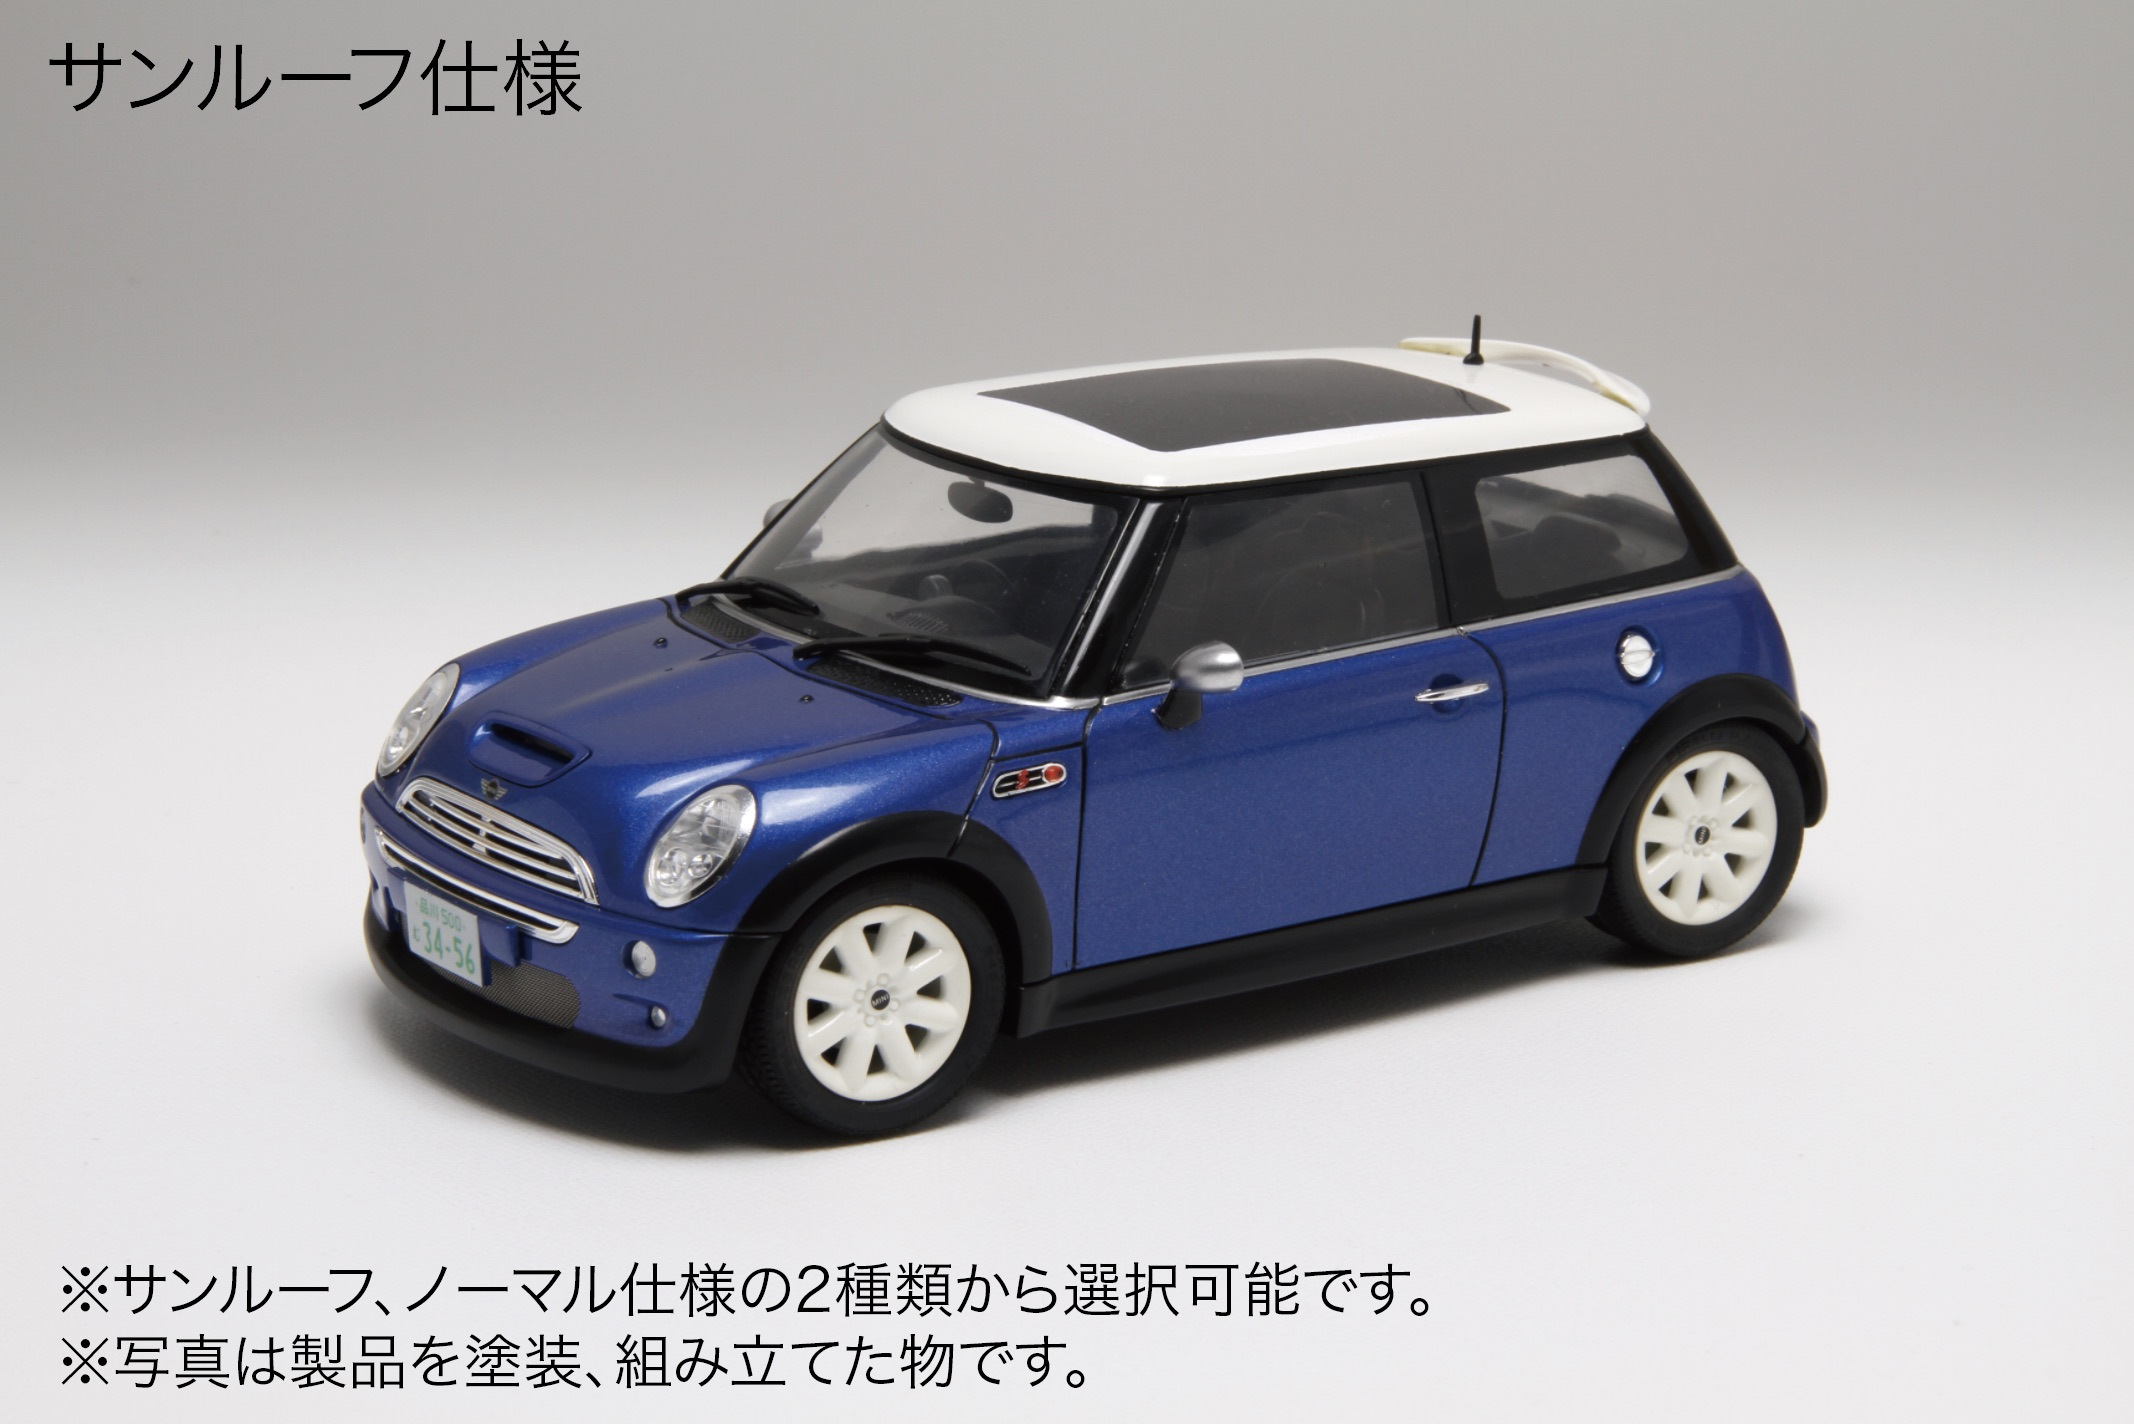 Fujimi 7 Toyland Hobby Modeling Magazine Snap Circuits Sound The Granville Island Toy Company Cooper Second Generation R56 Type You Can Choose Presence Or Absence Of Sunroof